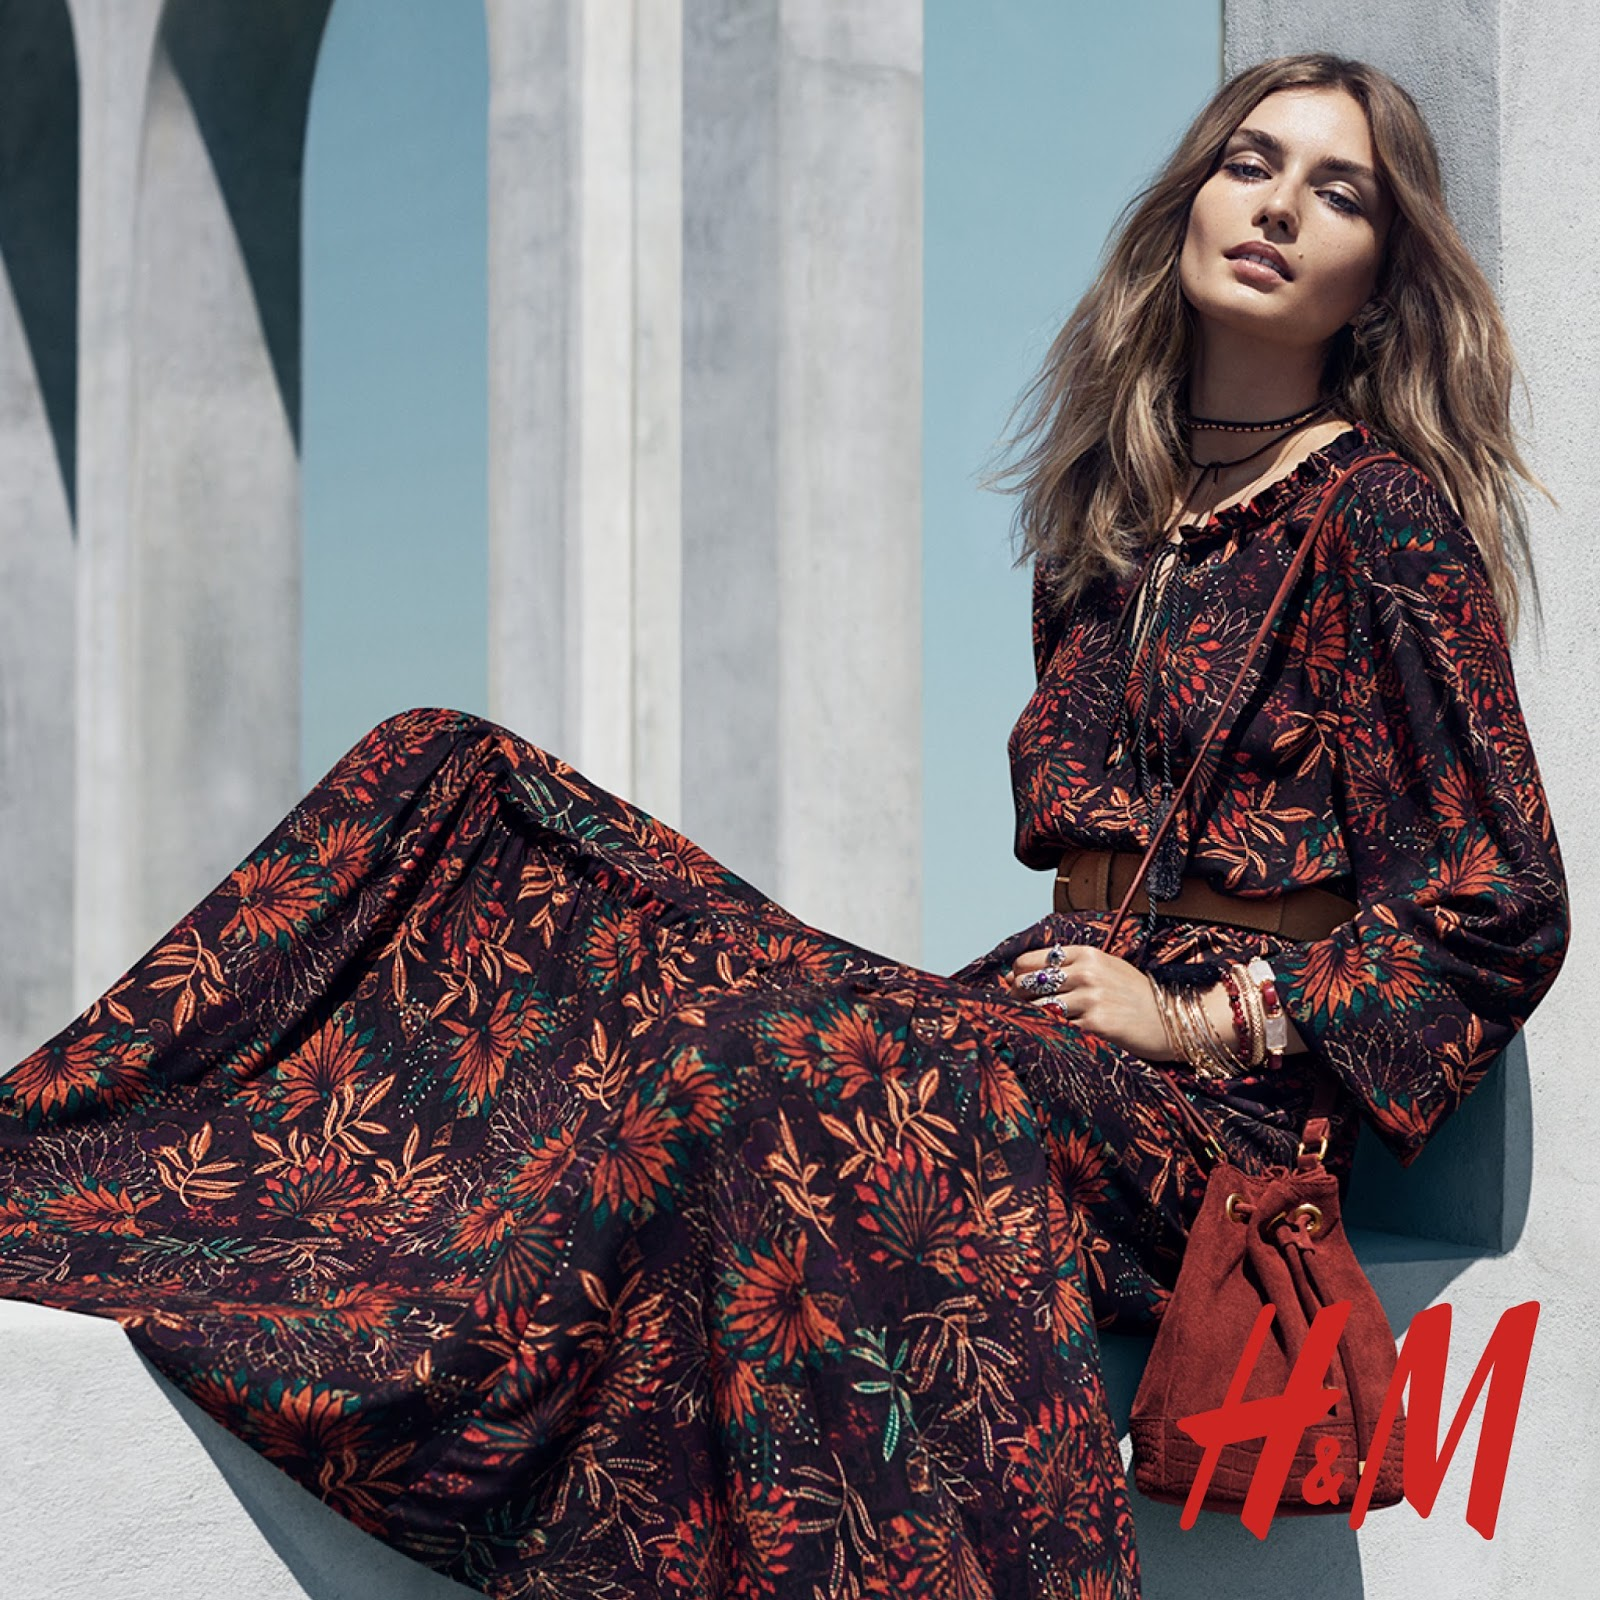 391f9715b67 THE PERFECT WINTER OUTFIT WITH H M